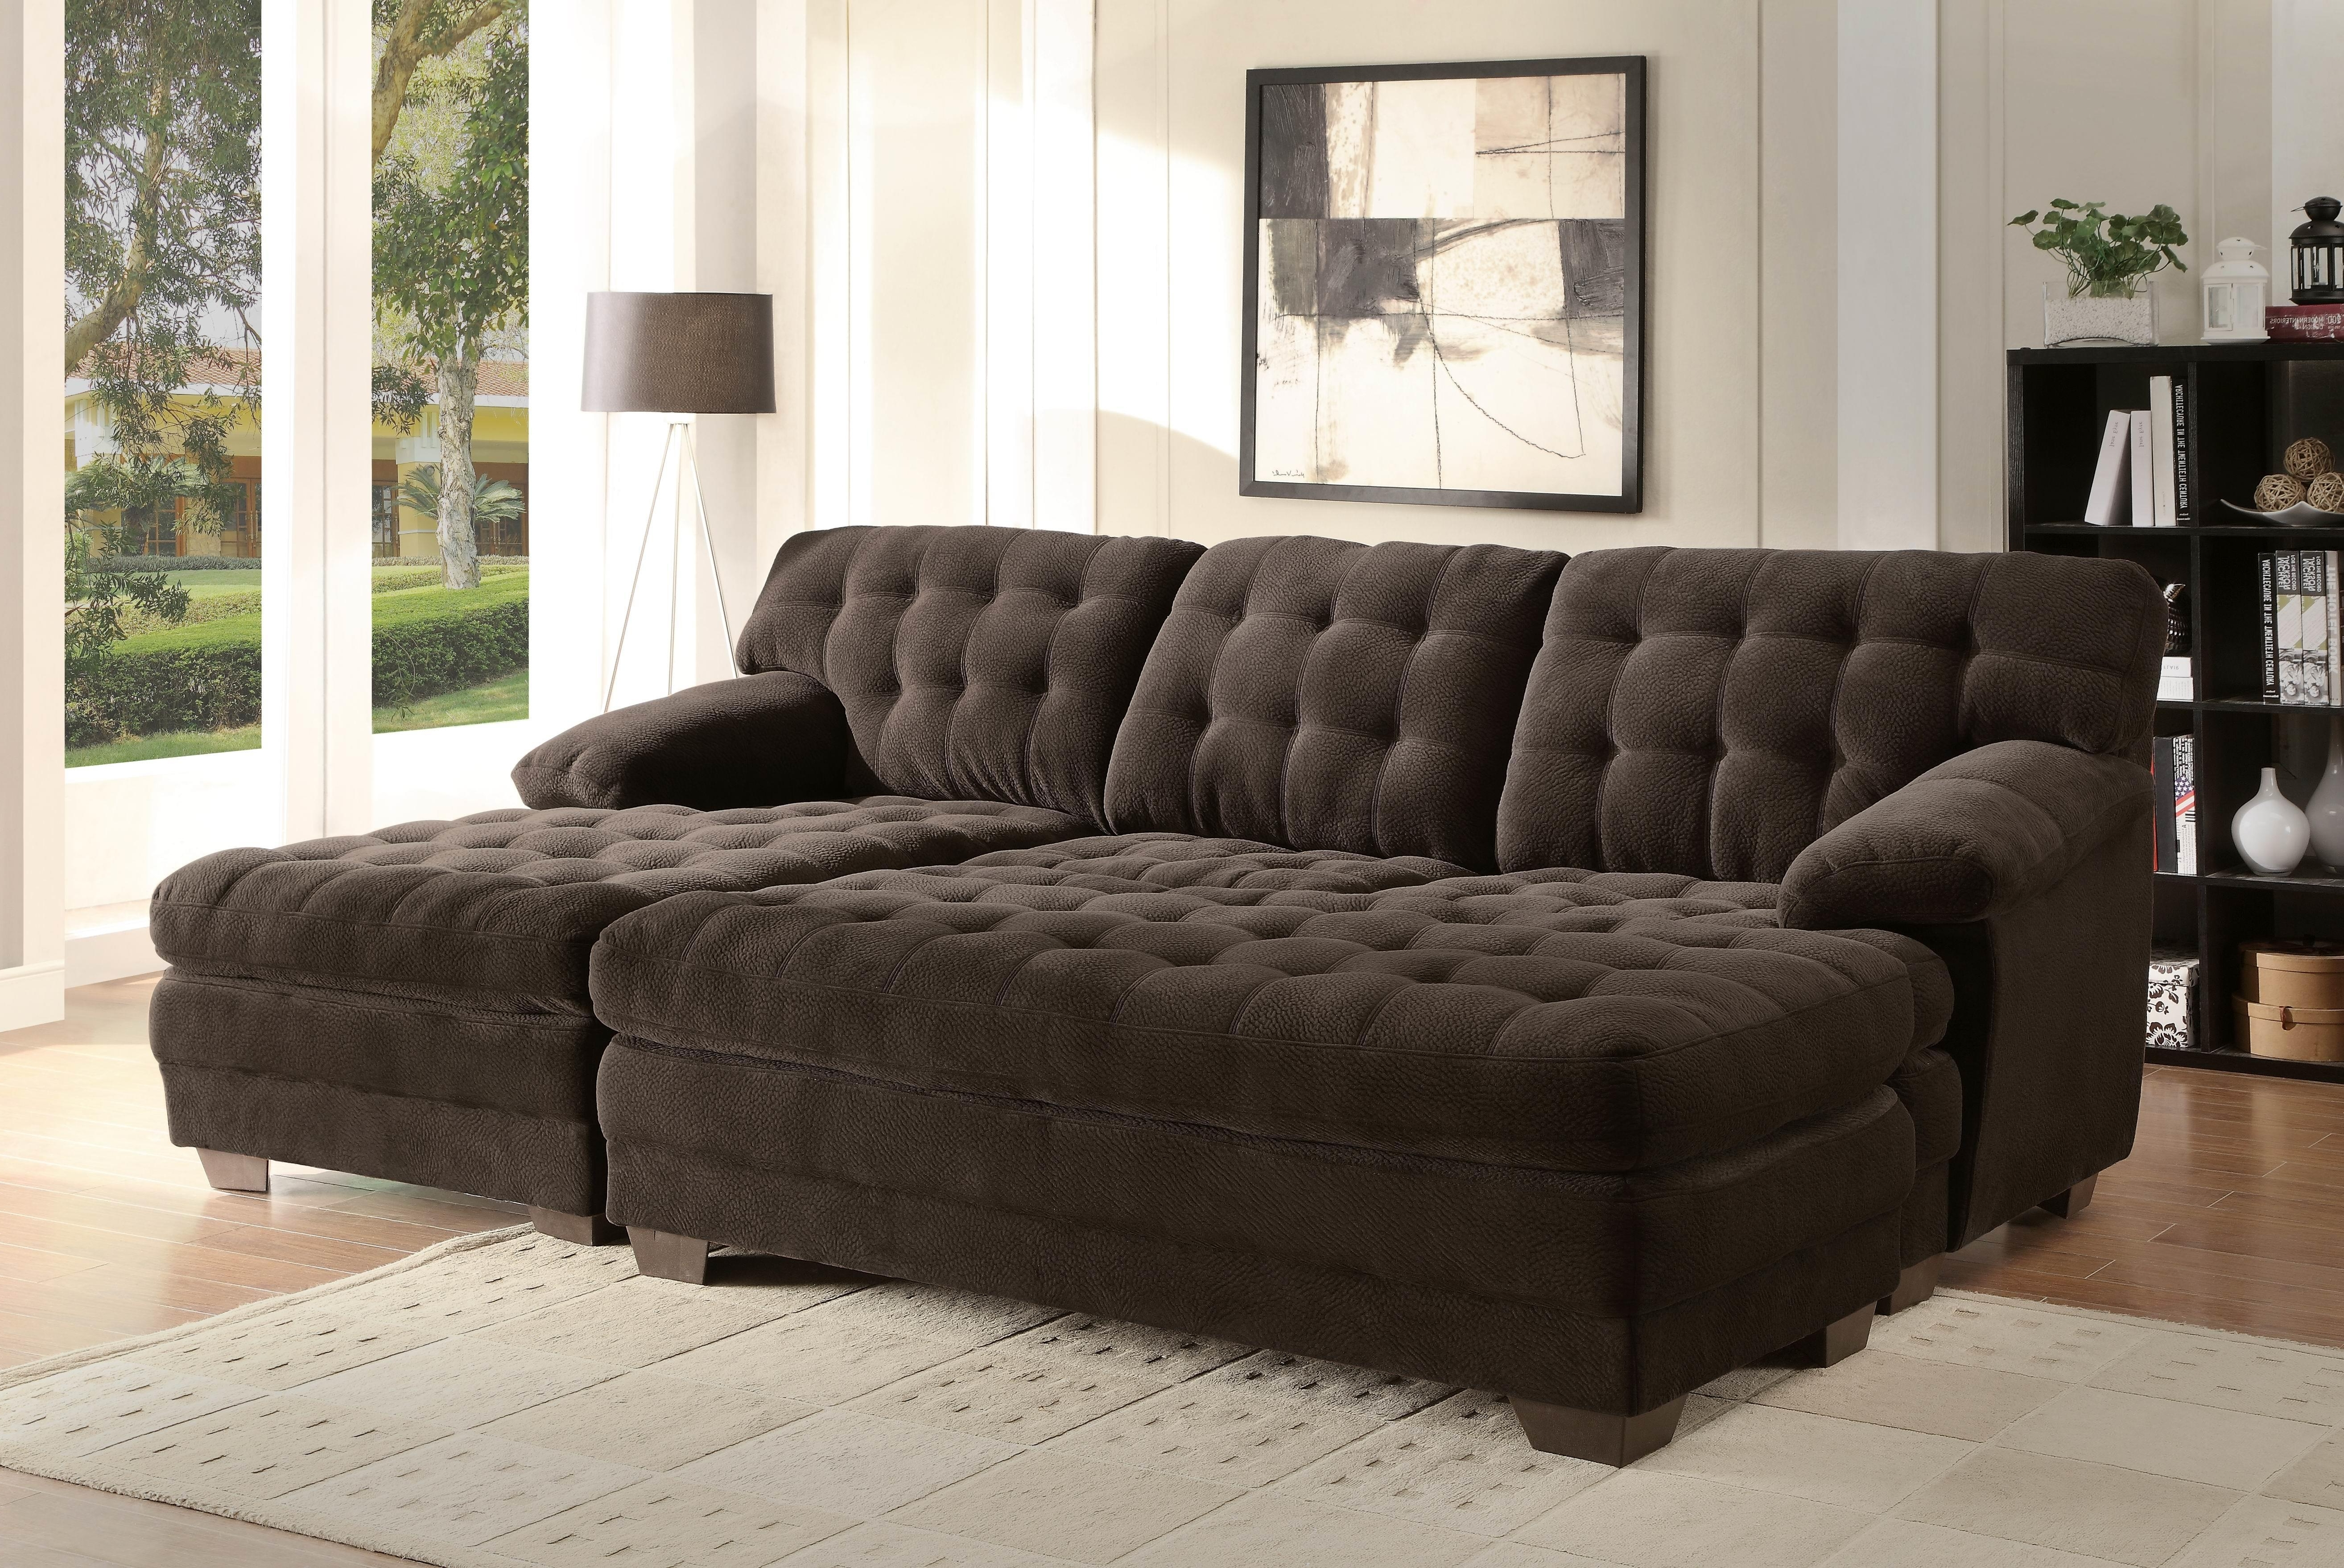 Most Popular Extra Large Sofas Pertaining To Extra Long Reclining Sofa Extra Large Sectional Sofas Oversized (View 11 of 20)